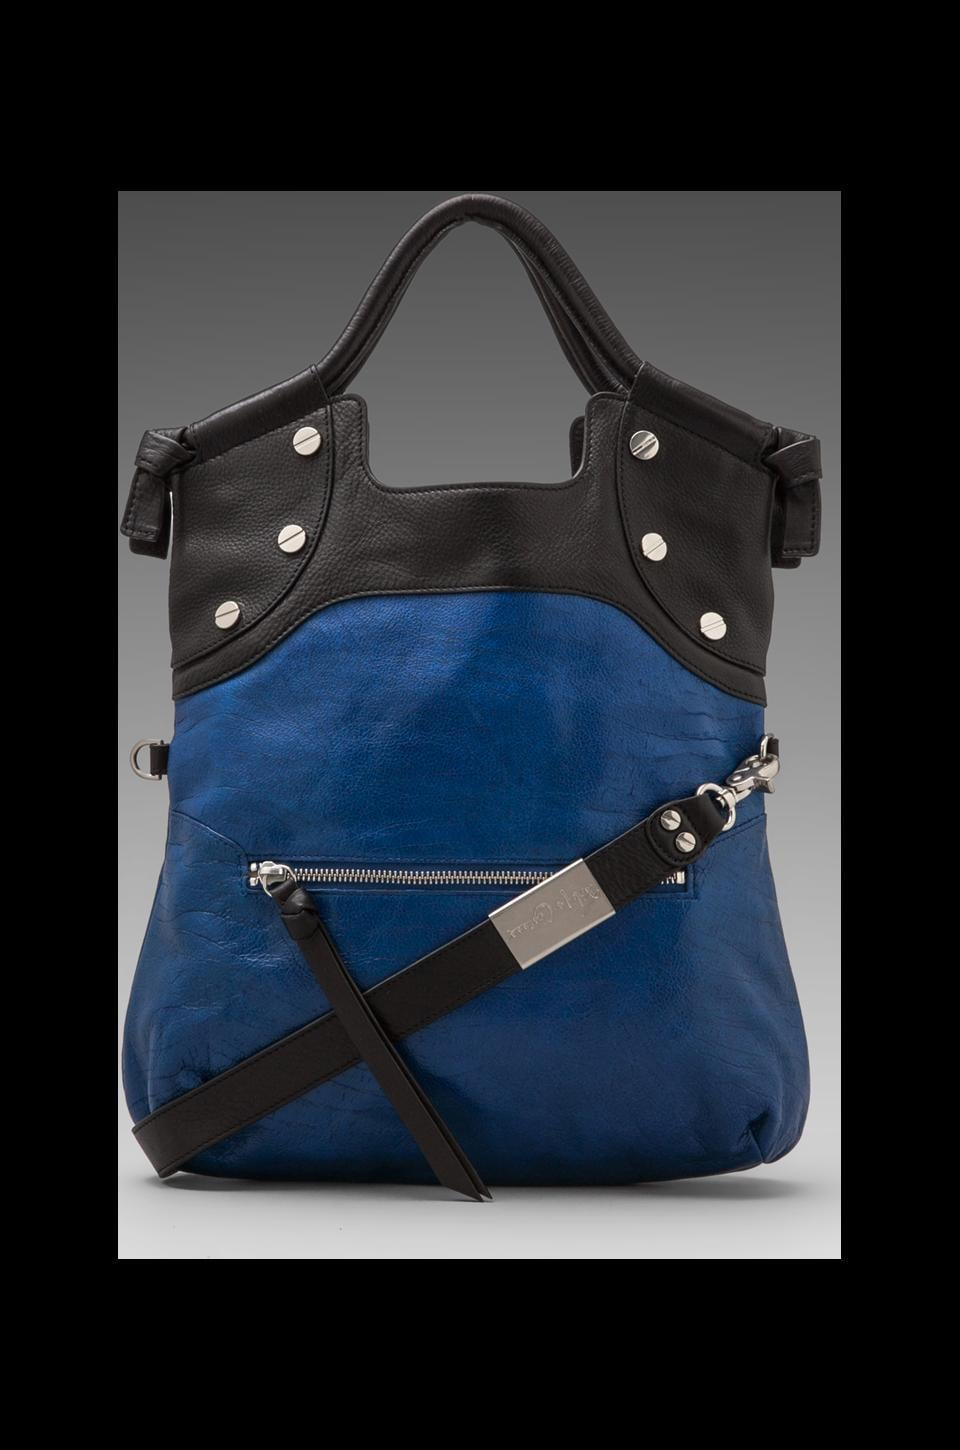 Foley + Corinna FC Lady Bag in Azure Combo